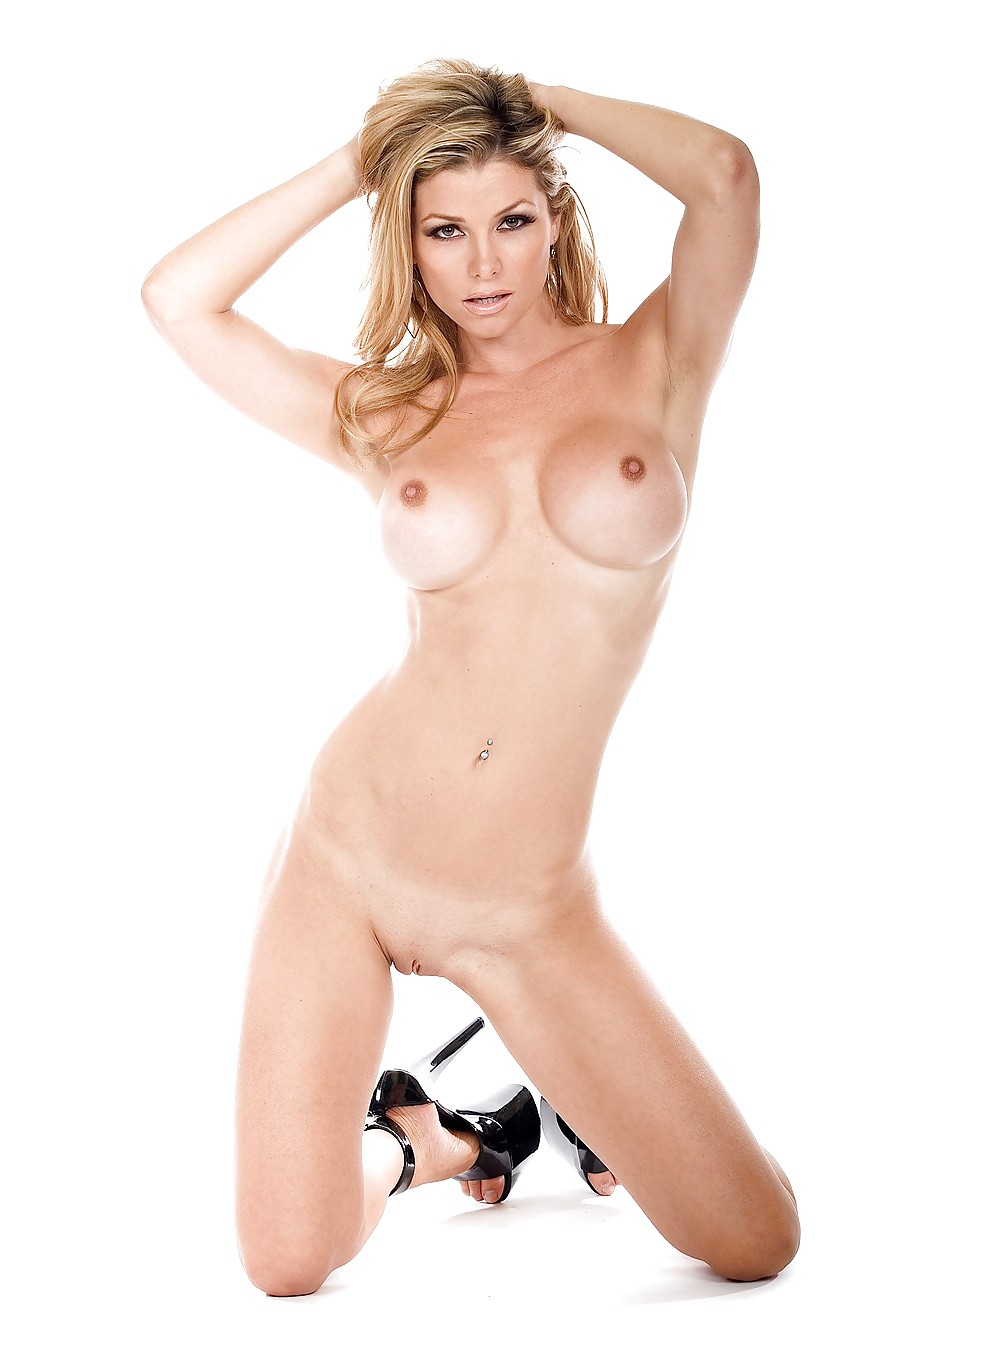 Heather vandeven life on top life on top celebrity nude breasts shaved